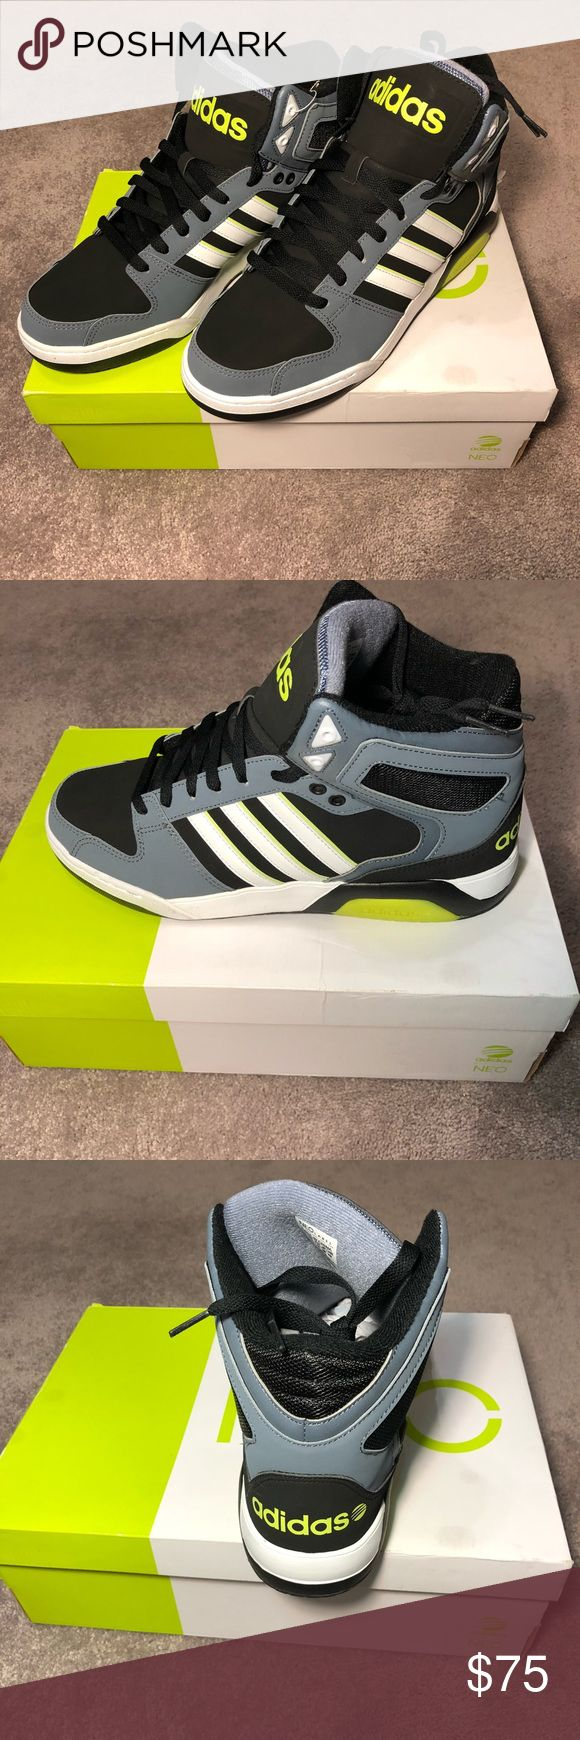 Adidas men's neo basketball sneakers 10 New in box men's adidas neo basketball high top sneakers. Size 10. Black, gray, yellow, and white. Tried on, never worn. adidas Shoes Sneakers #sneakersadidas